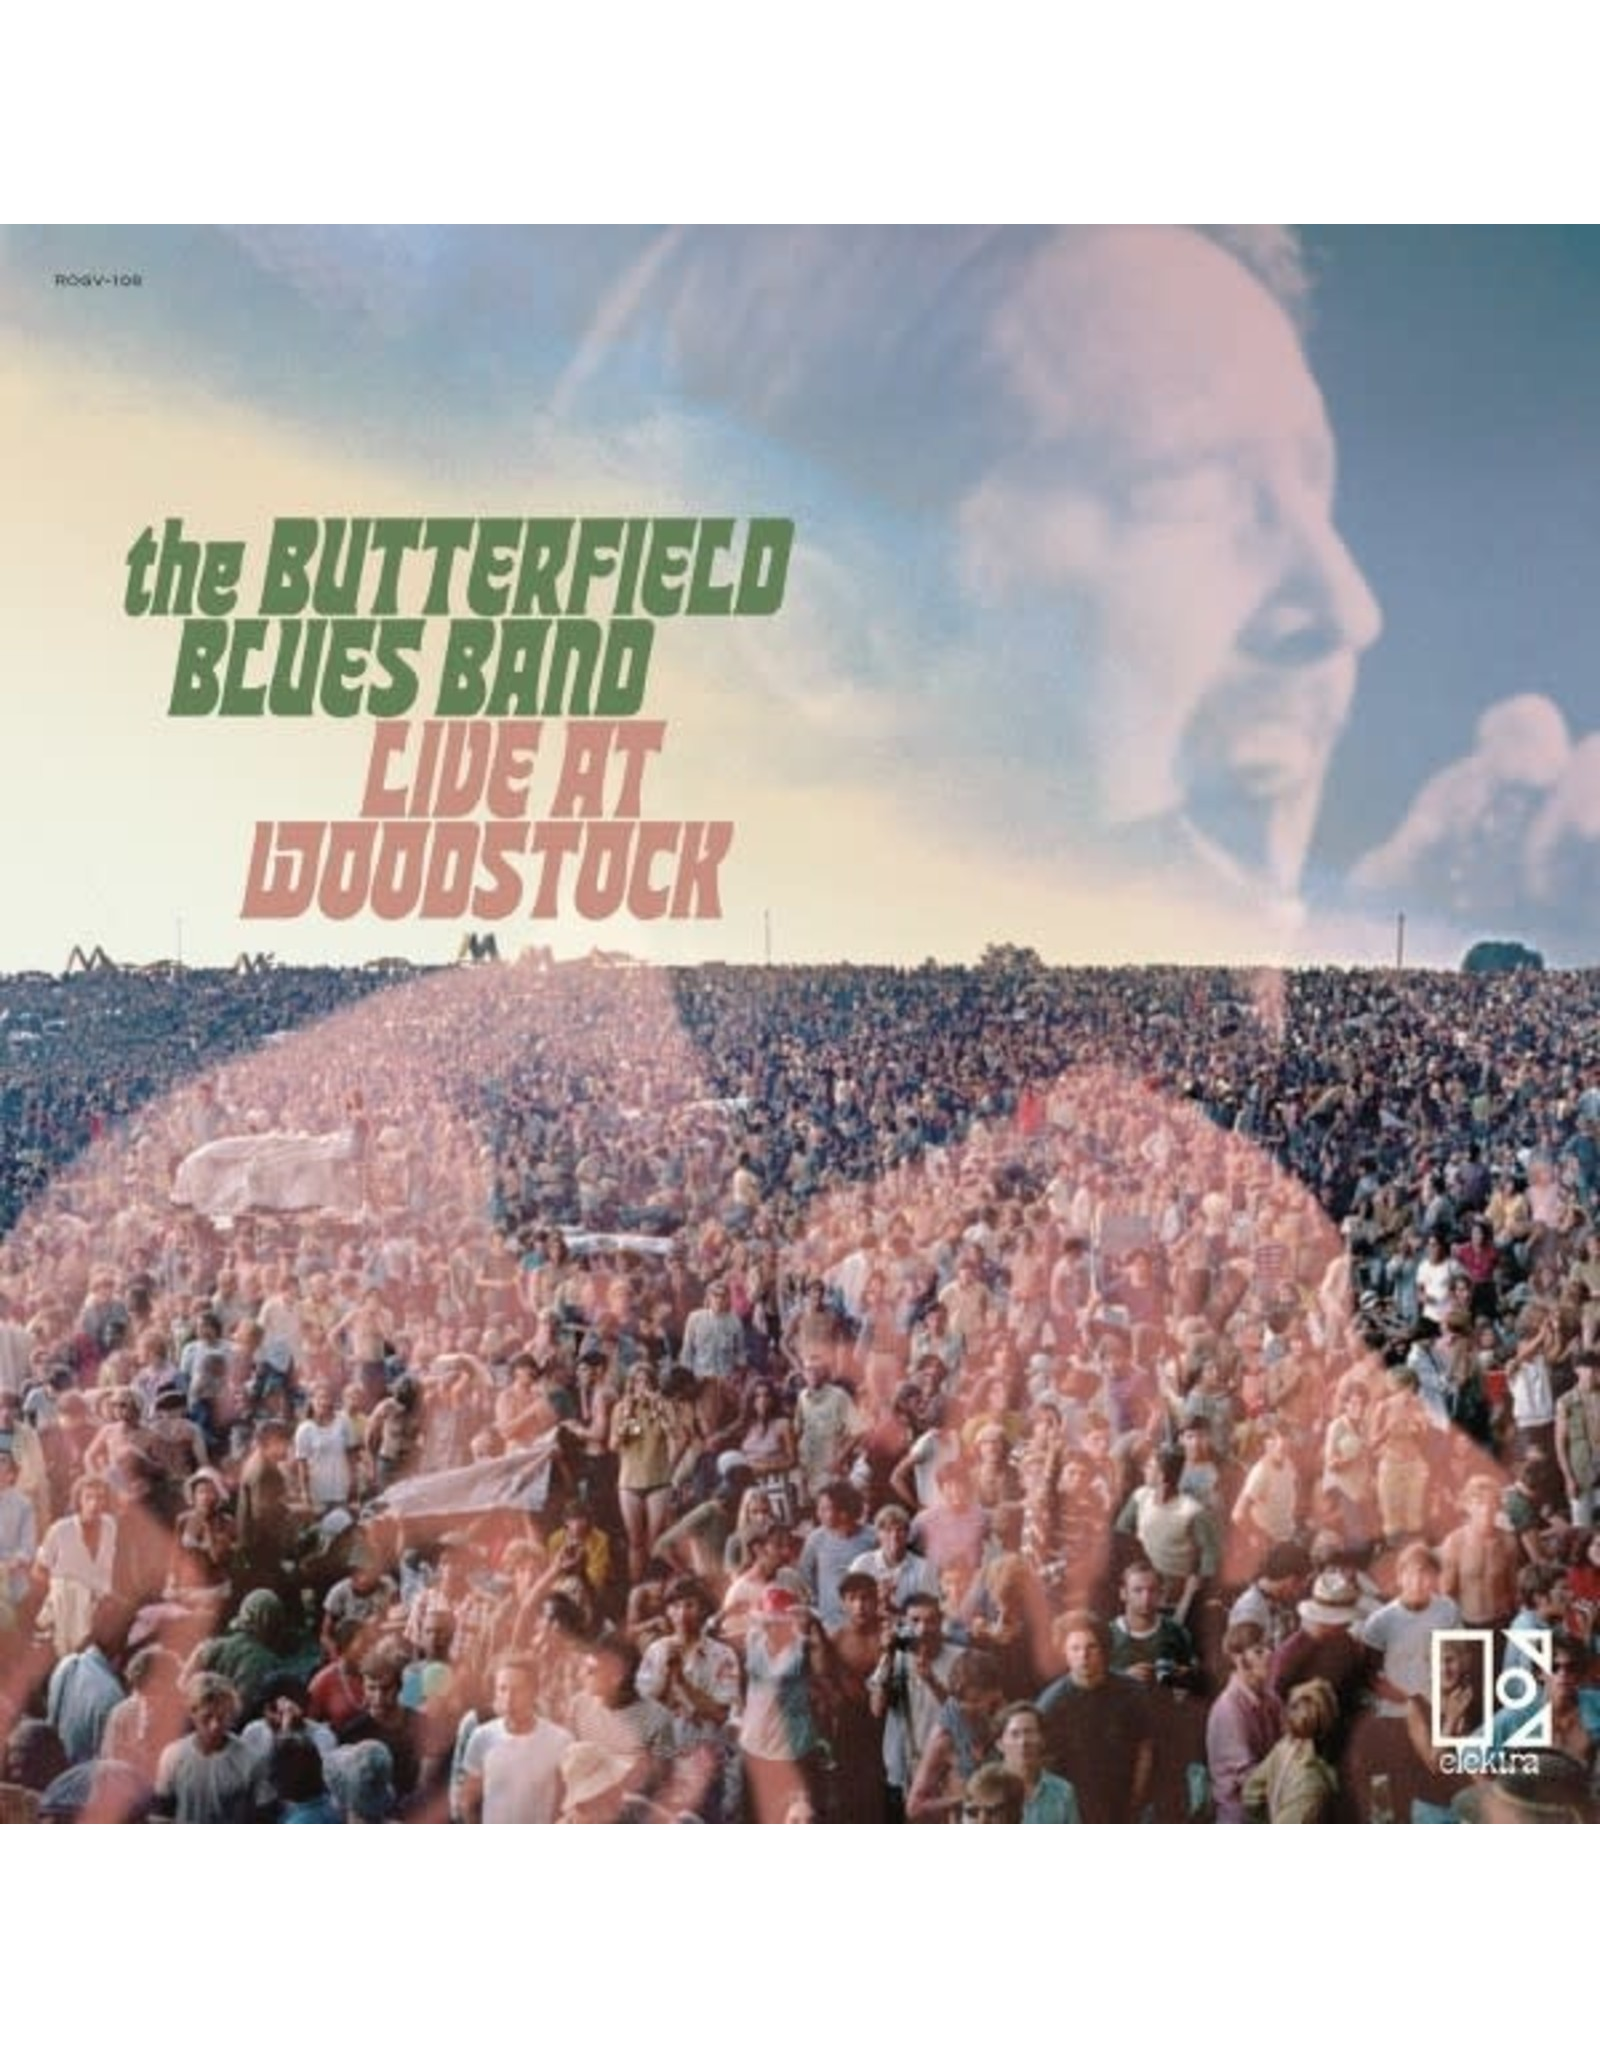 Butterfield Blues Band - Live at Woodstock 2LP